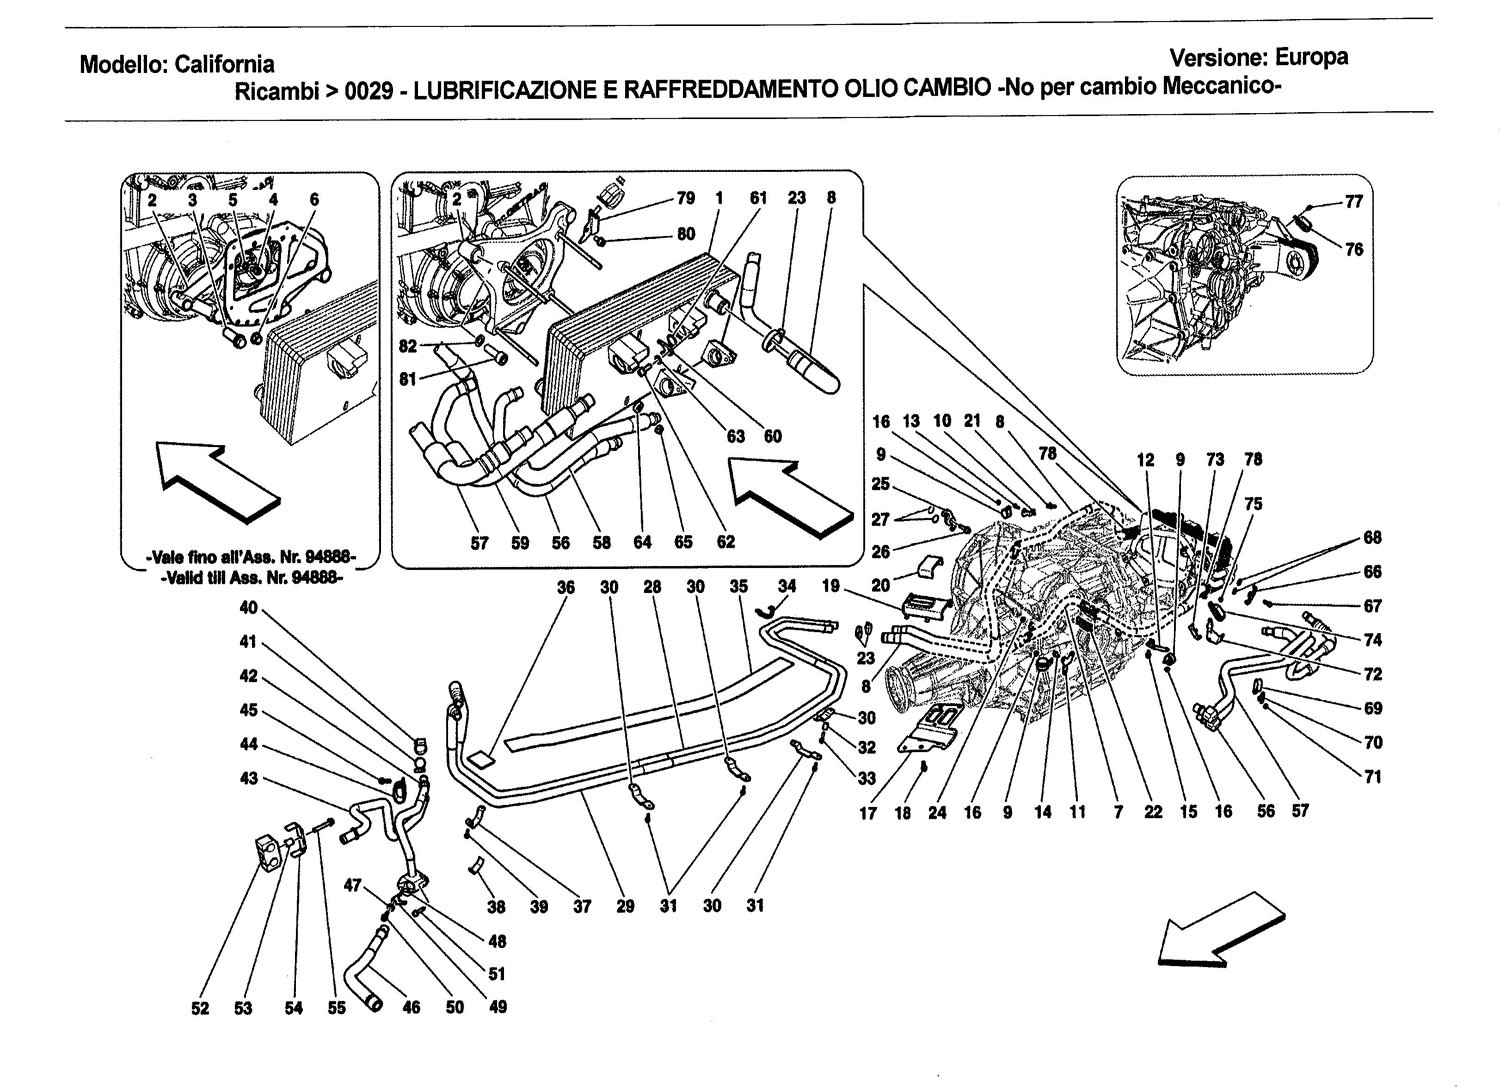 GEARBOX LUBRICATION AND COOLING CIRCUIT -Not for mechanical gearbox-